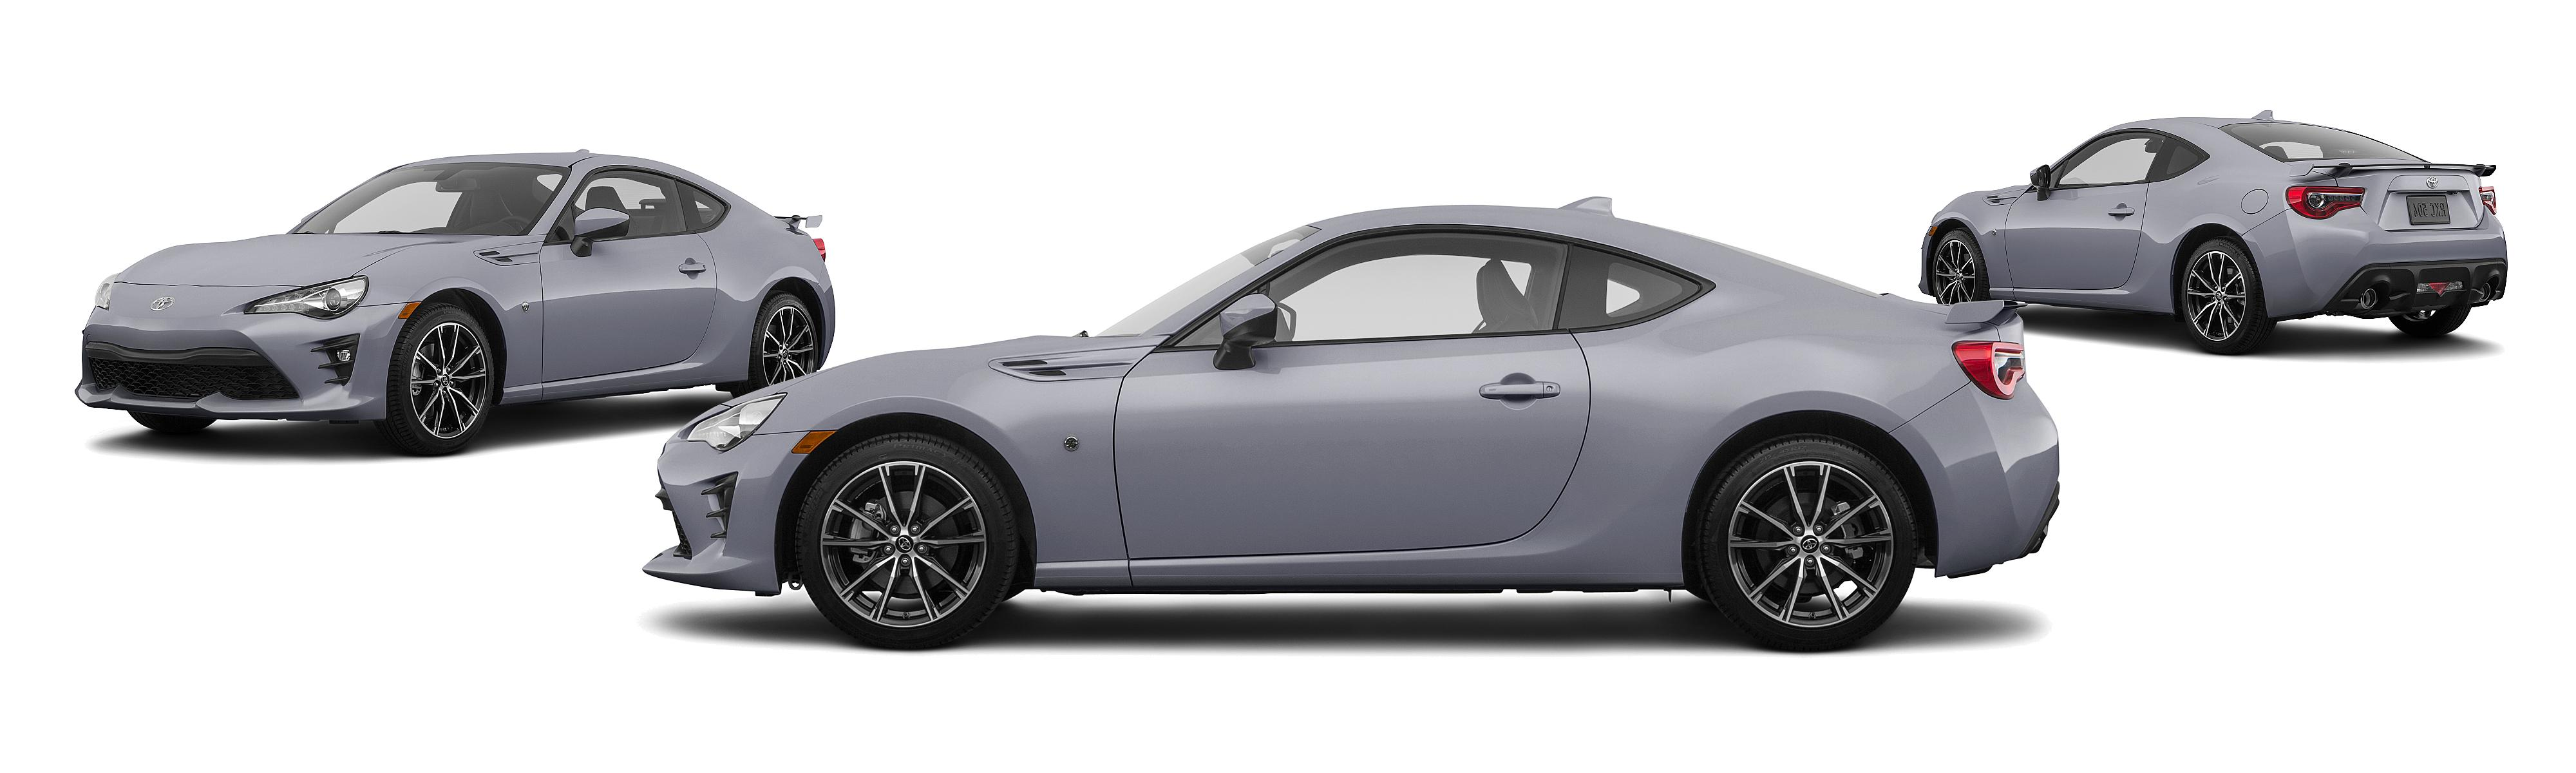 Toyota GT Dr Coupe A Research GrooveCar - Toyota 86 invoice price